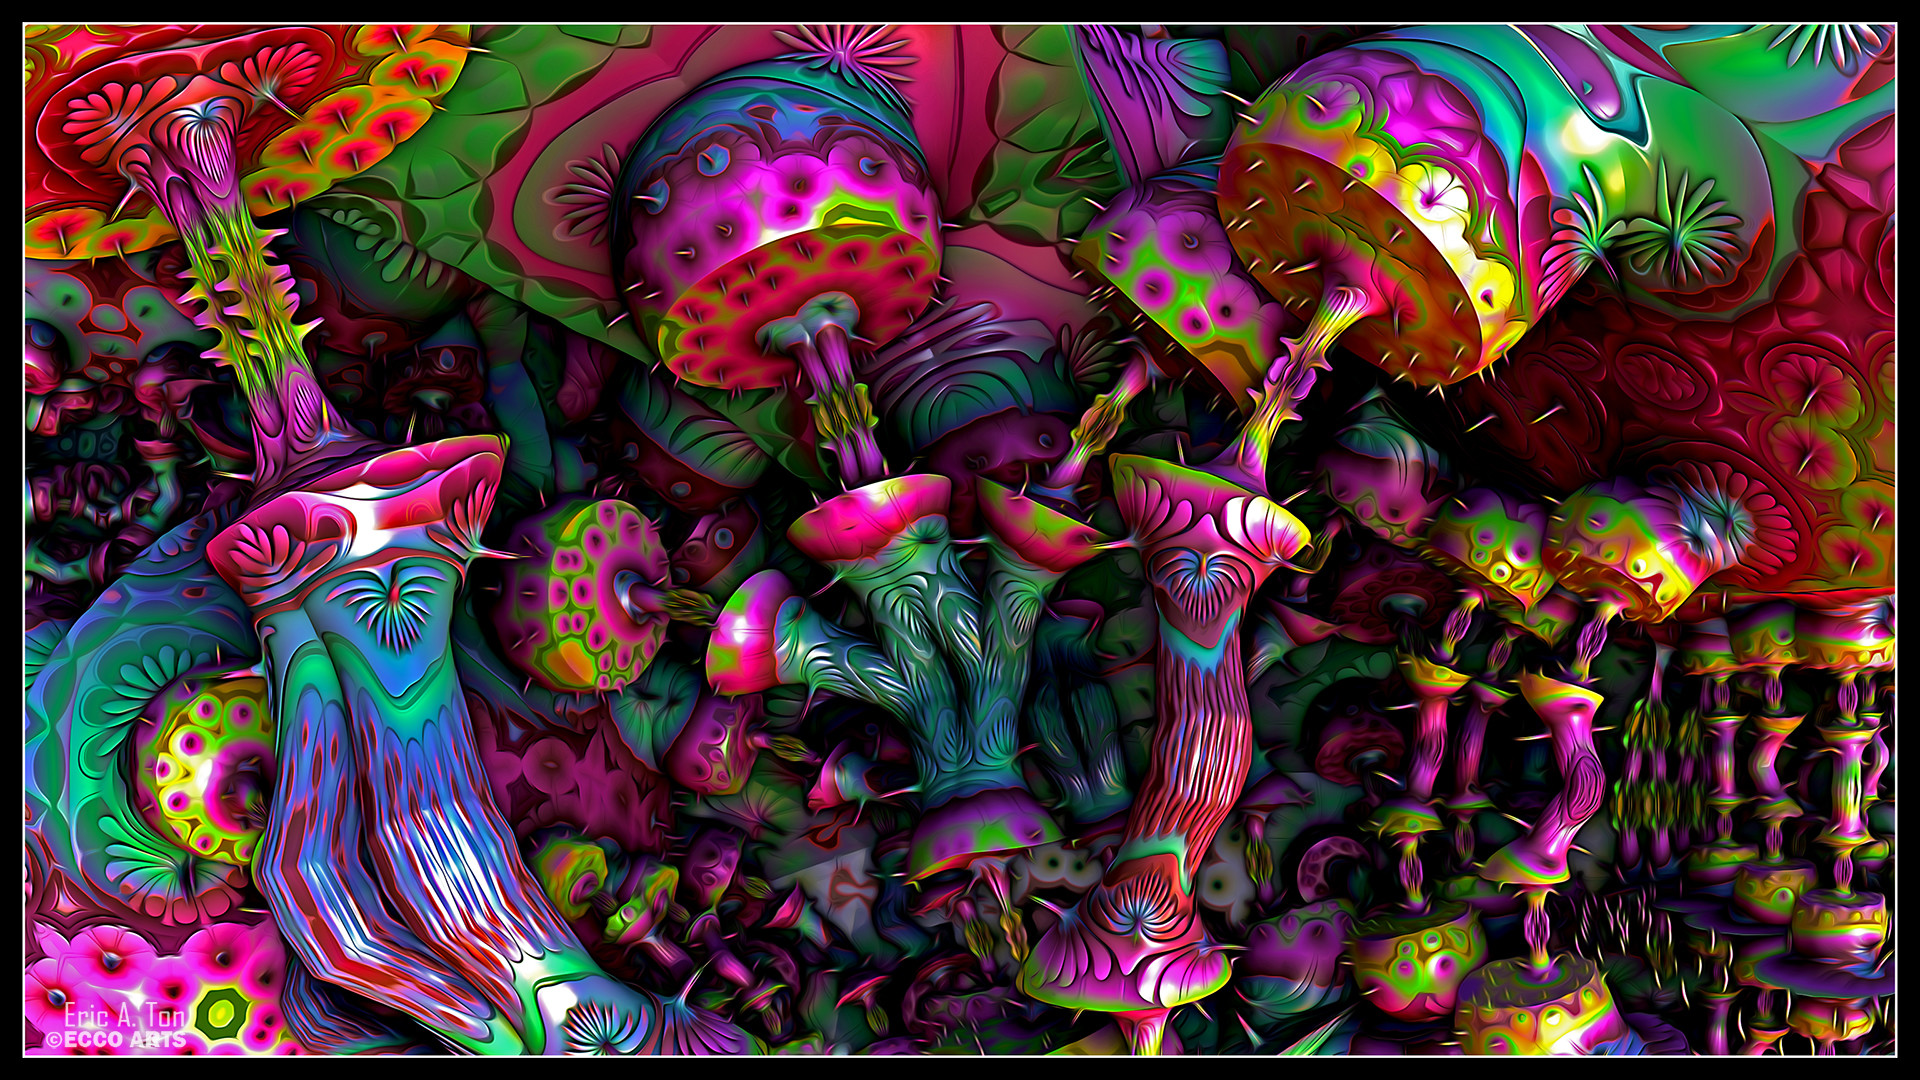 1920x1080 Psychedelic Mushrooms by eccoarts on DeviantArt